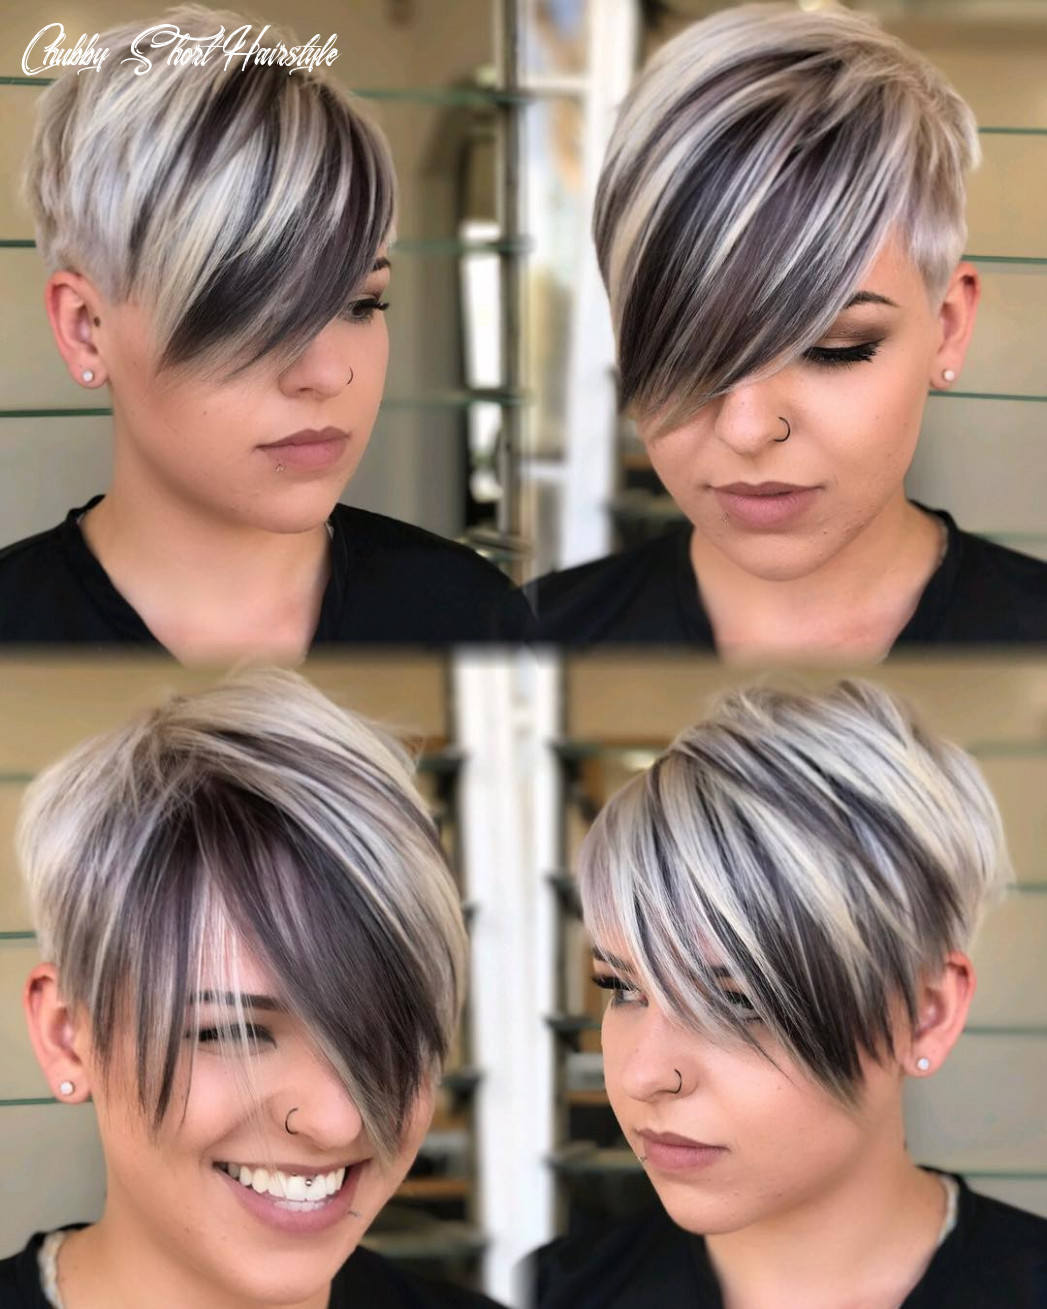 12 Short Hairstyles for Round Faces with Slimming Effect - Hadviser